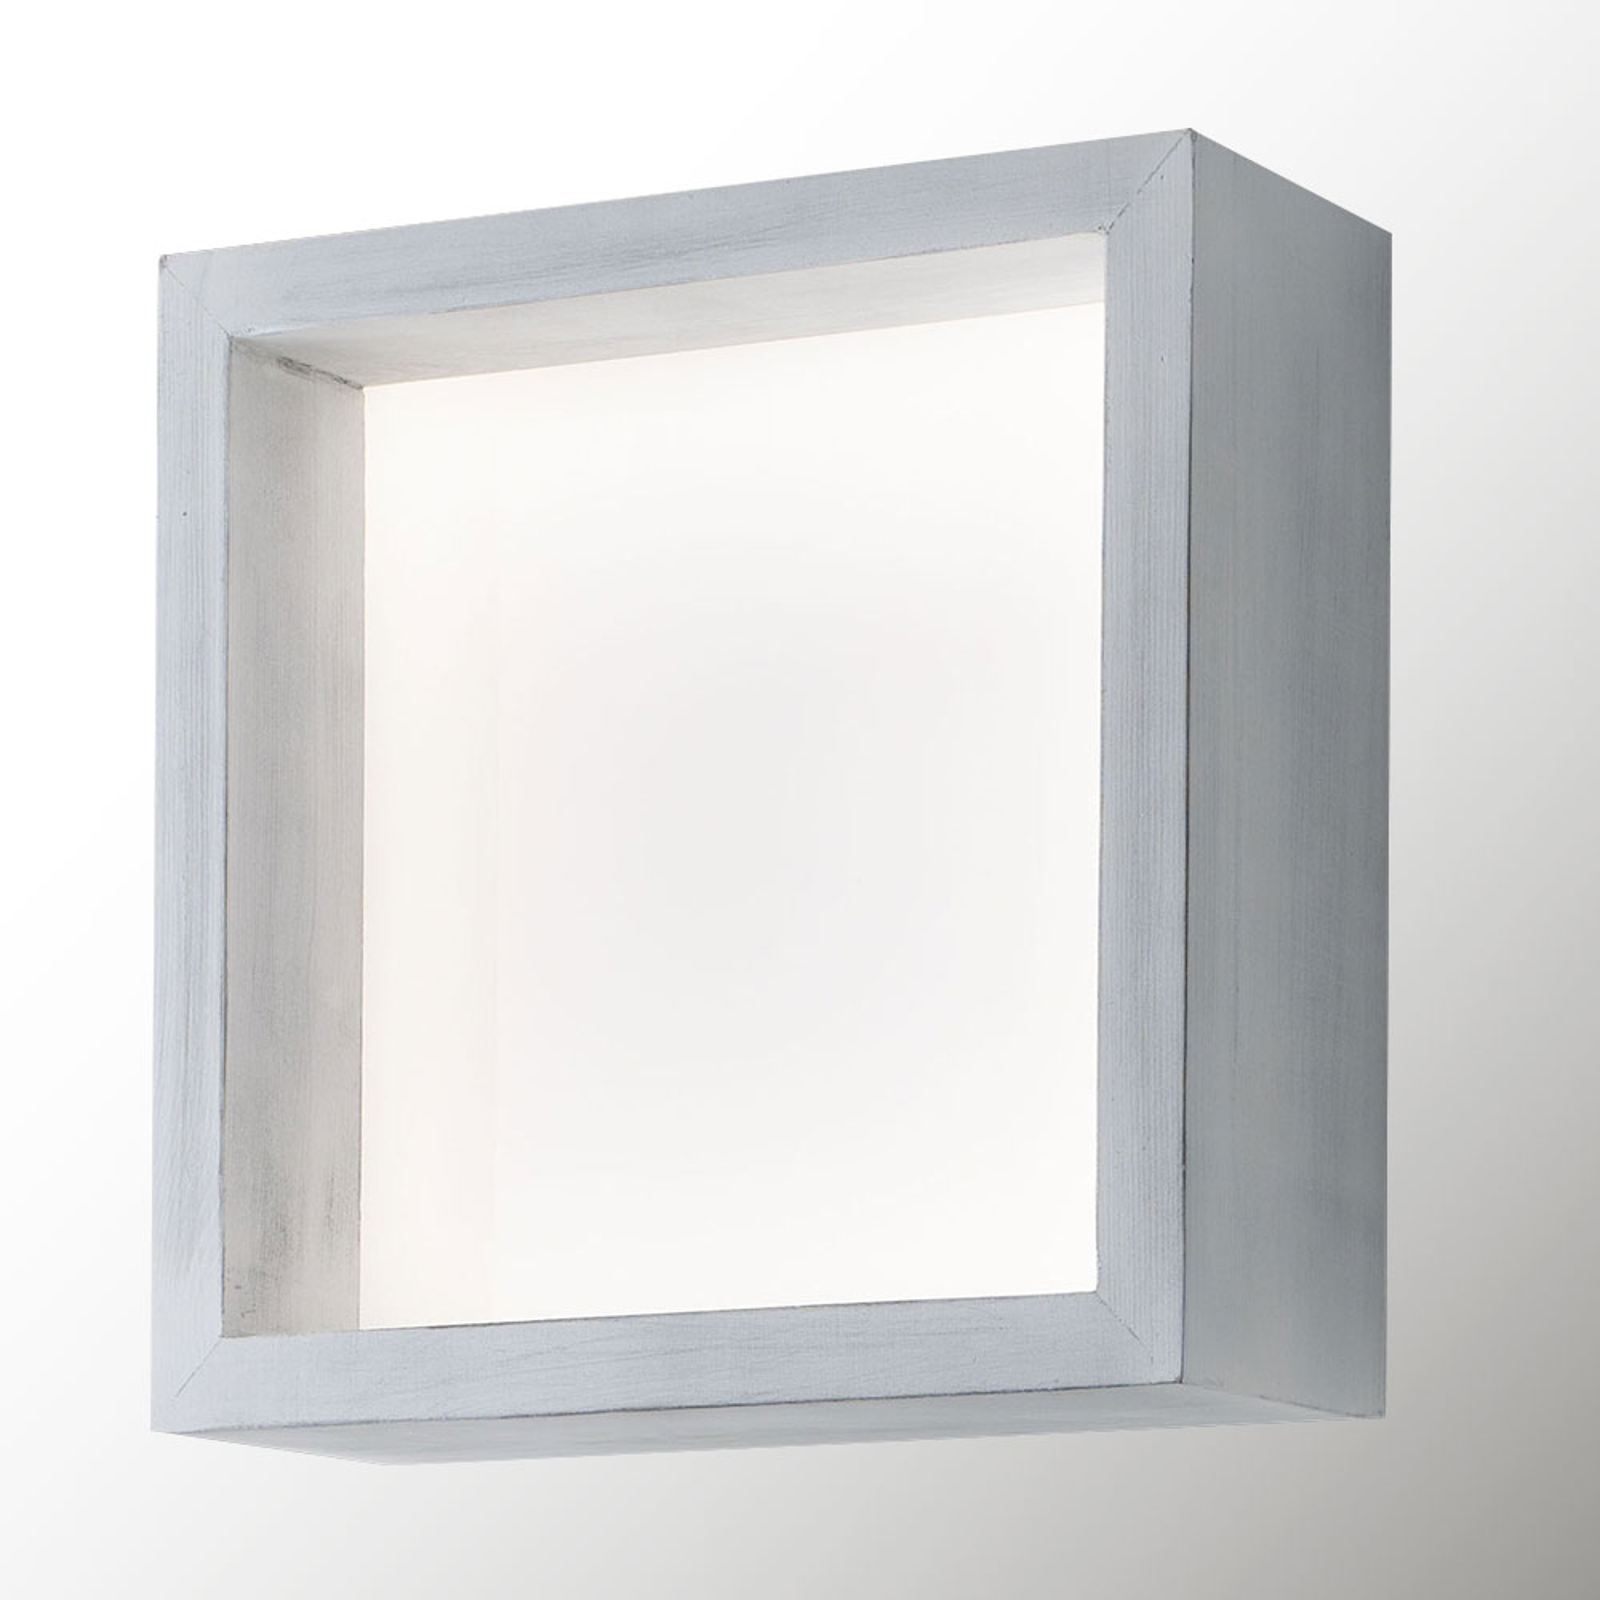 Applique LED Window, 37 x 37 cm, blanc vintage